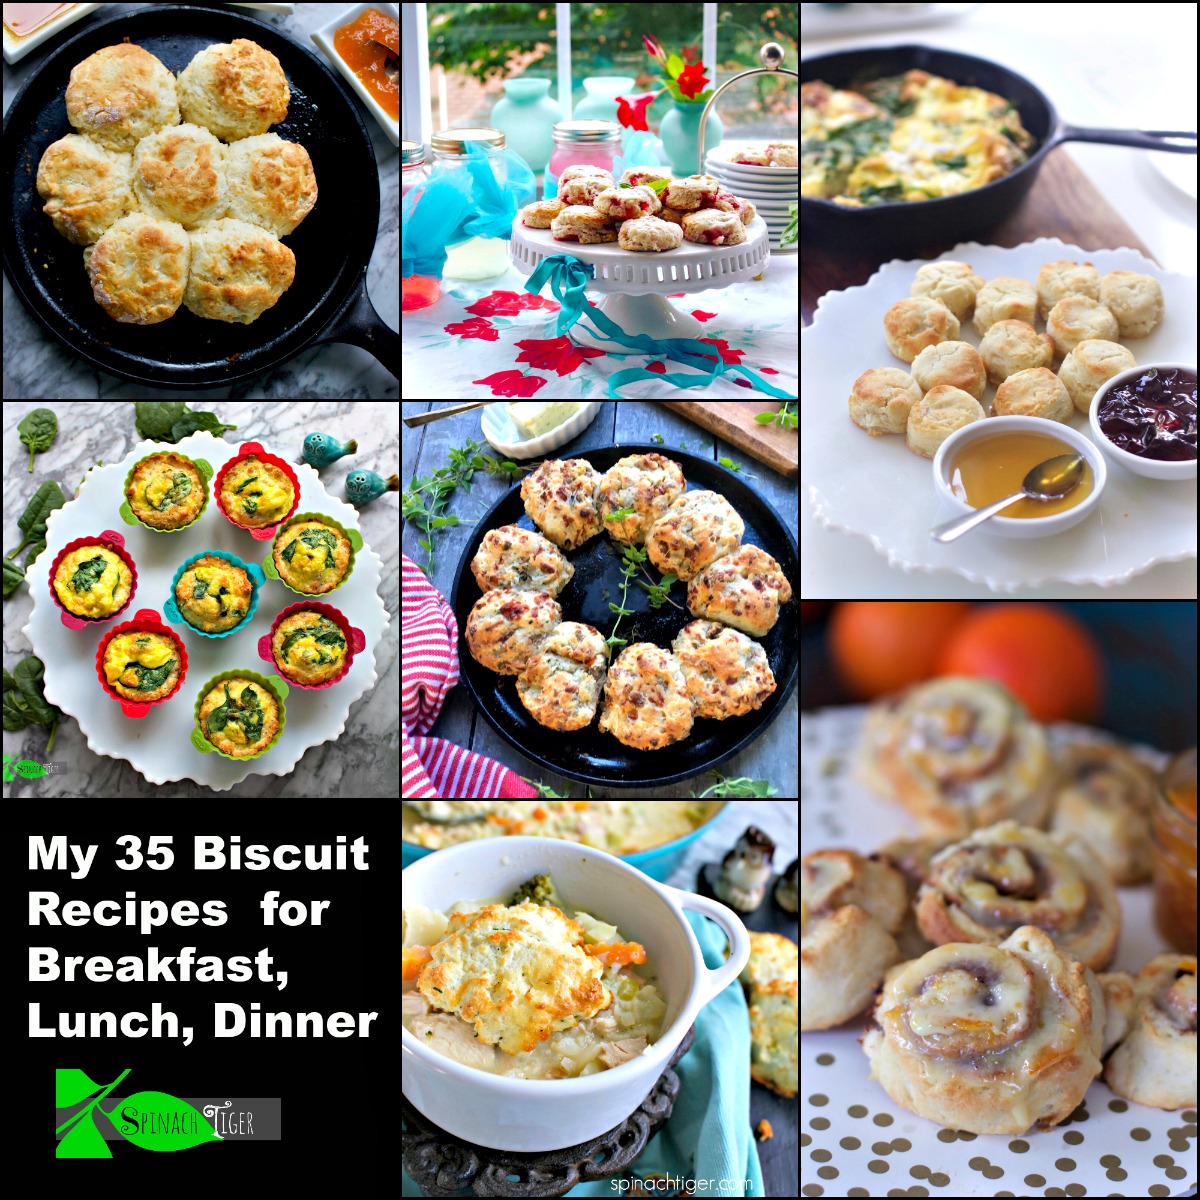 My very own 35 Biscuit Recipes (from scratch). Southern Fluffy biscuit, Cinnamon Roll Biscuit, Chicken and Biscuits, Shortcake Biscuits, Sweet Potato Biscuits, Italian Sausage Biscuits and More. Big variety with gluten free and keto options in addition to 30 traditional southern biscuit recipes, from #spinachtiger. #southernbiscuitrecipes #fluffybiscuits #sweetpotatobiscuits #southernfood via @angelaroberts